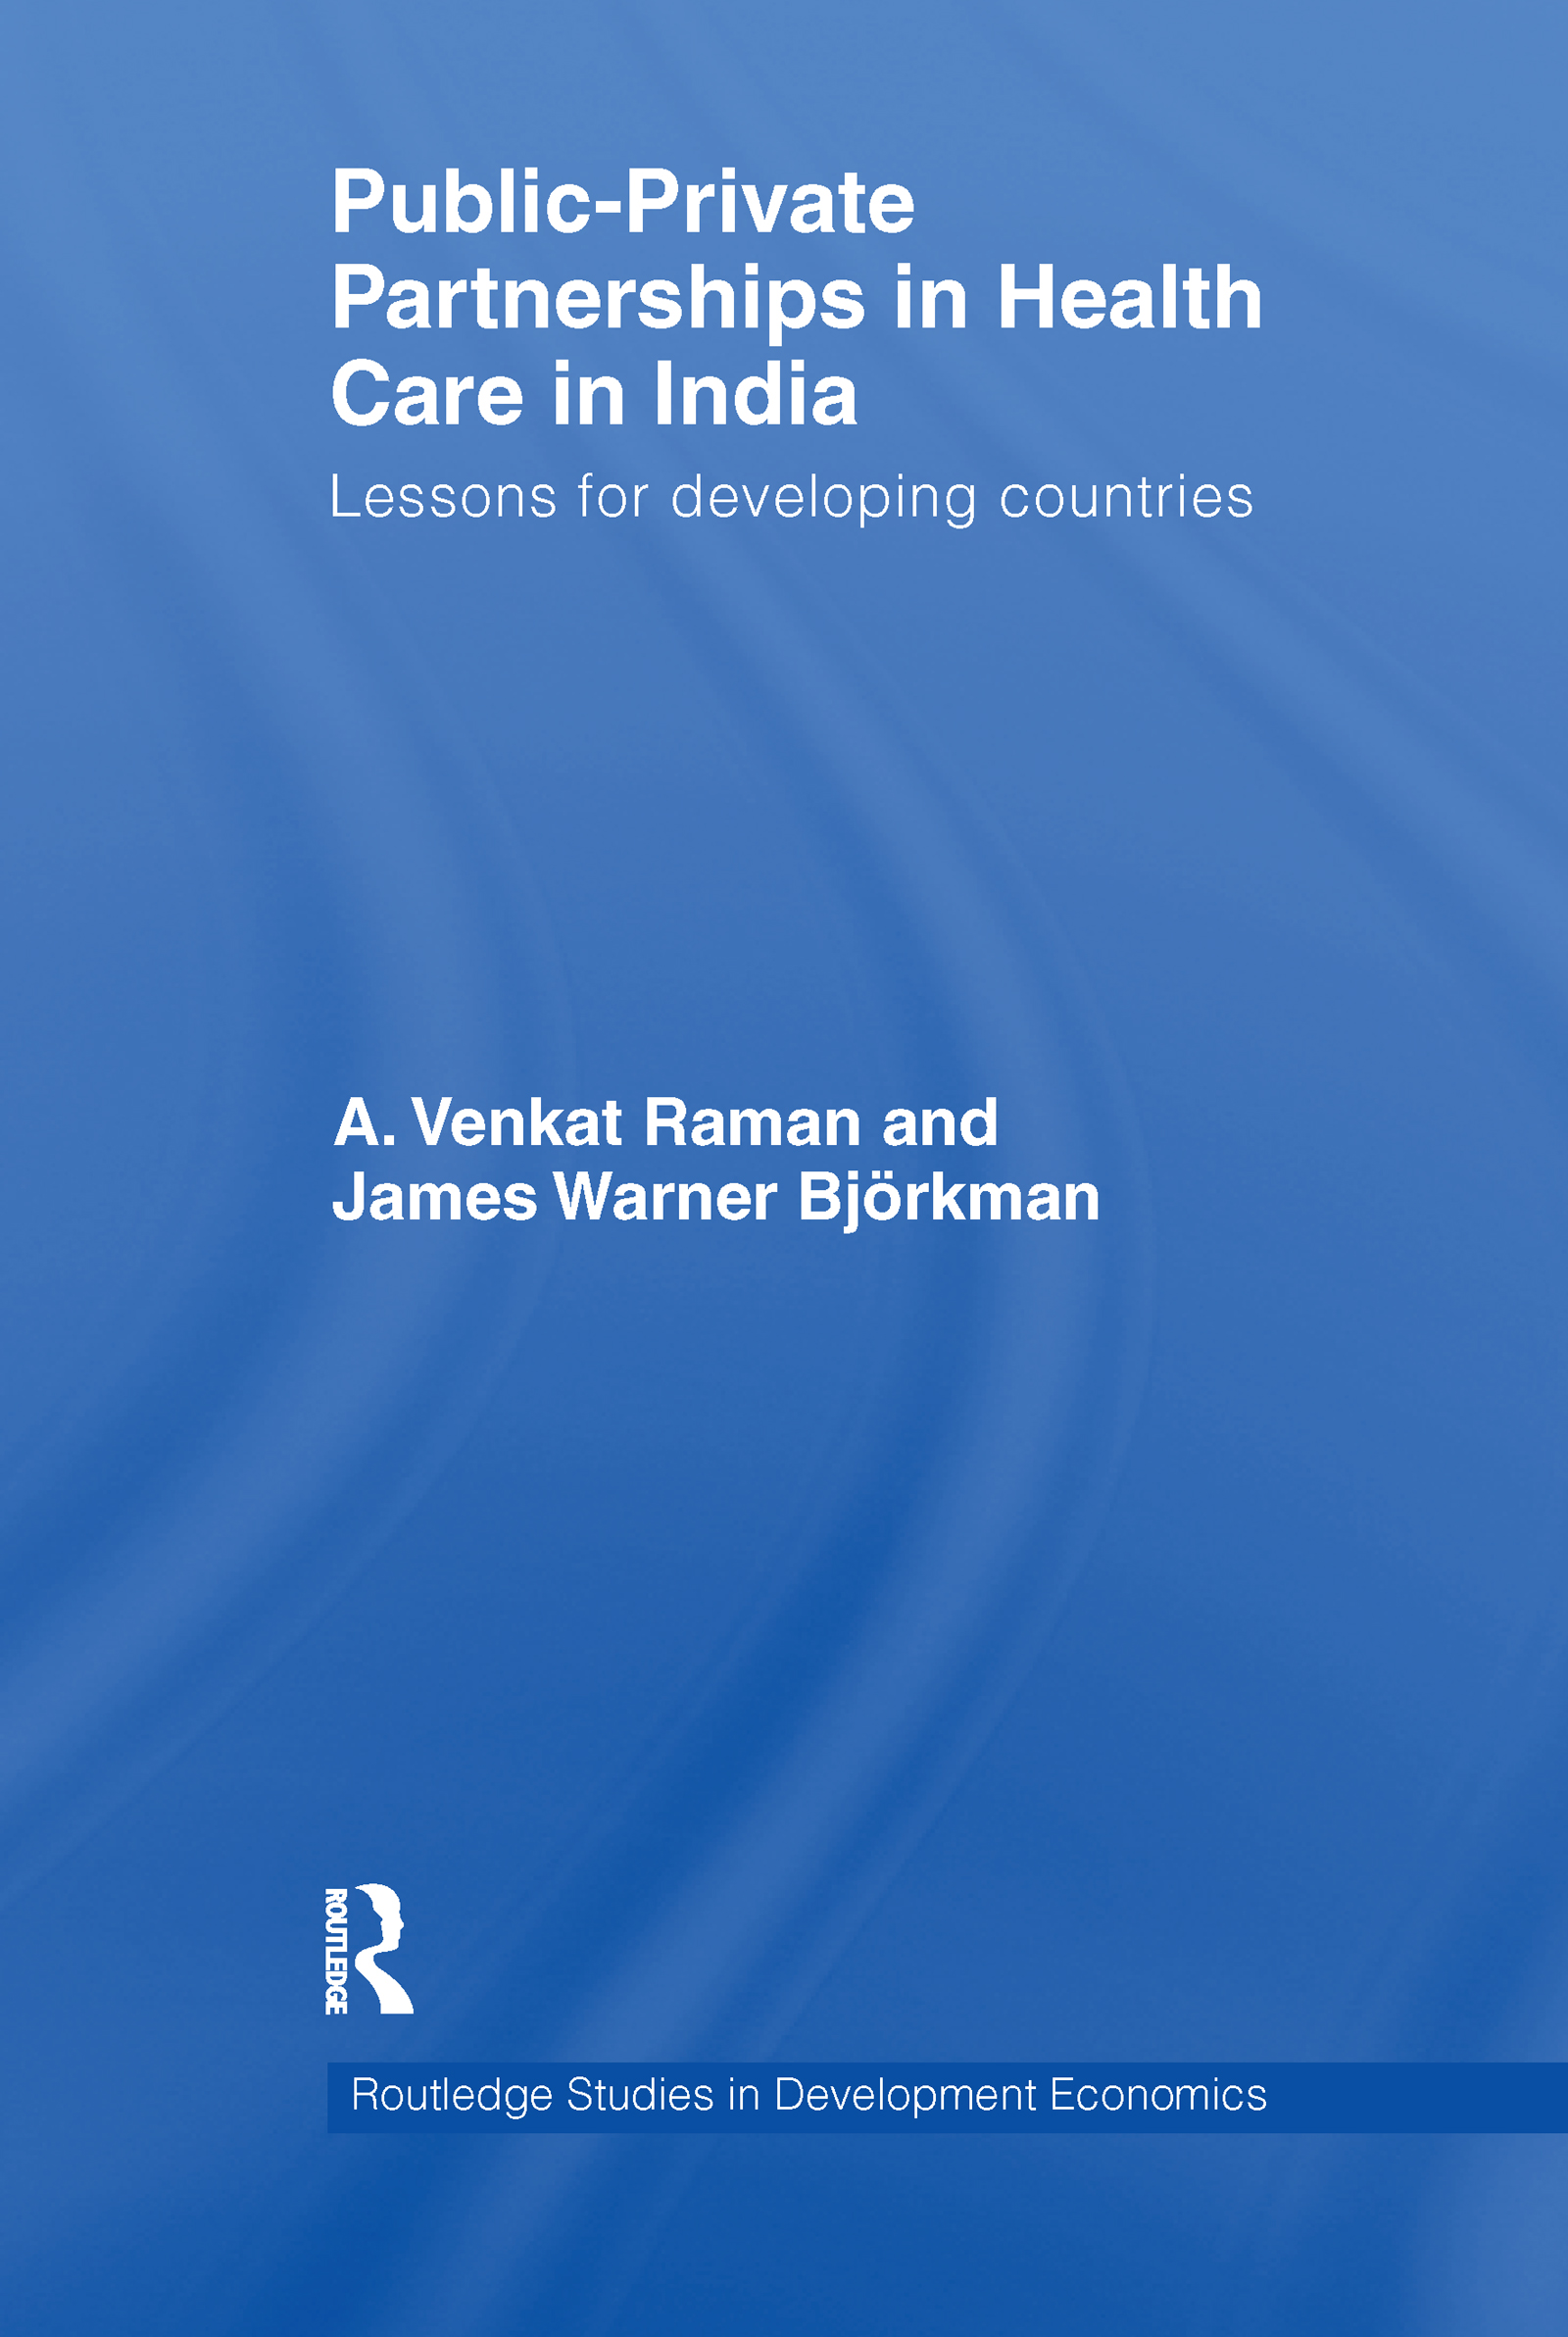 Public-Private Partnerships in Health Care in India